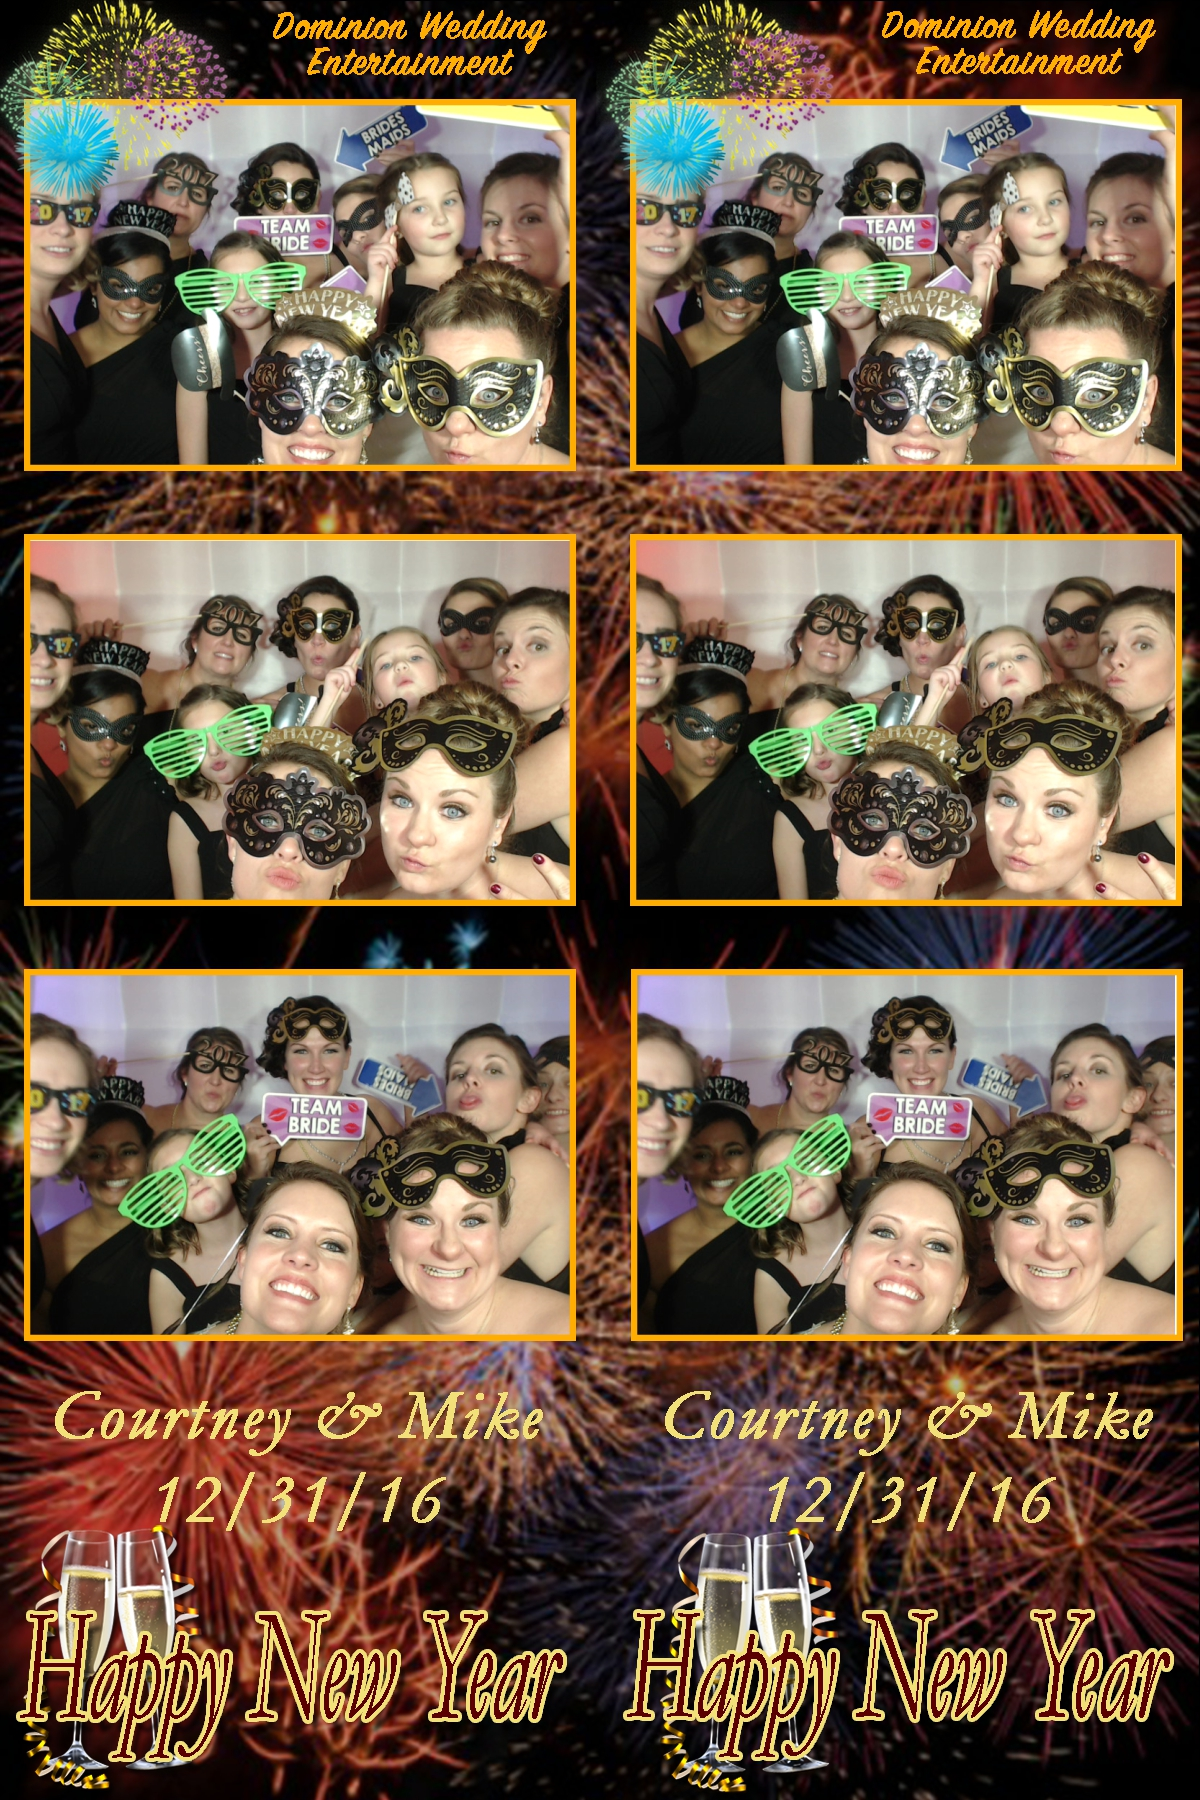 New Year's Eve Photo Booth Gang